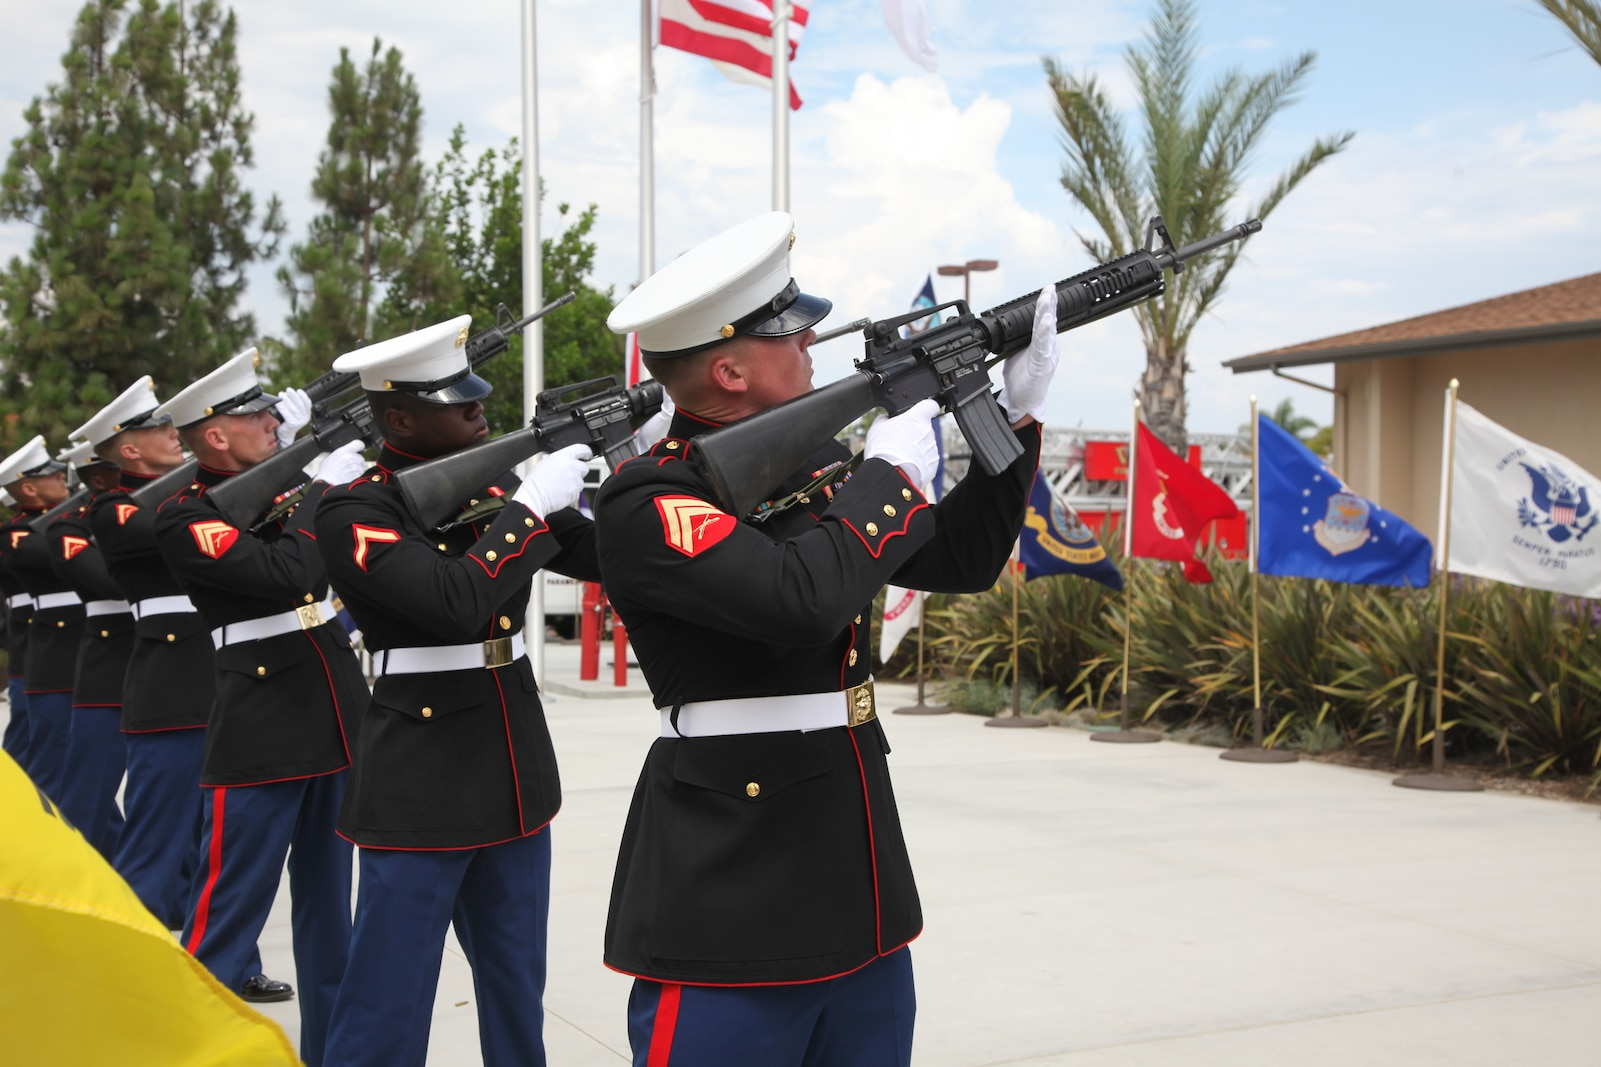 Marines with Combat Logistics Battalion 13 conduct a three-volley salute at Patriot Day 2012, a 9/11 remembrance event, held at Faith Lutheran Church, Sept. 9.